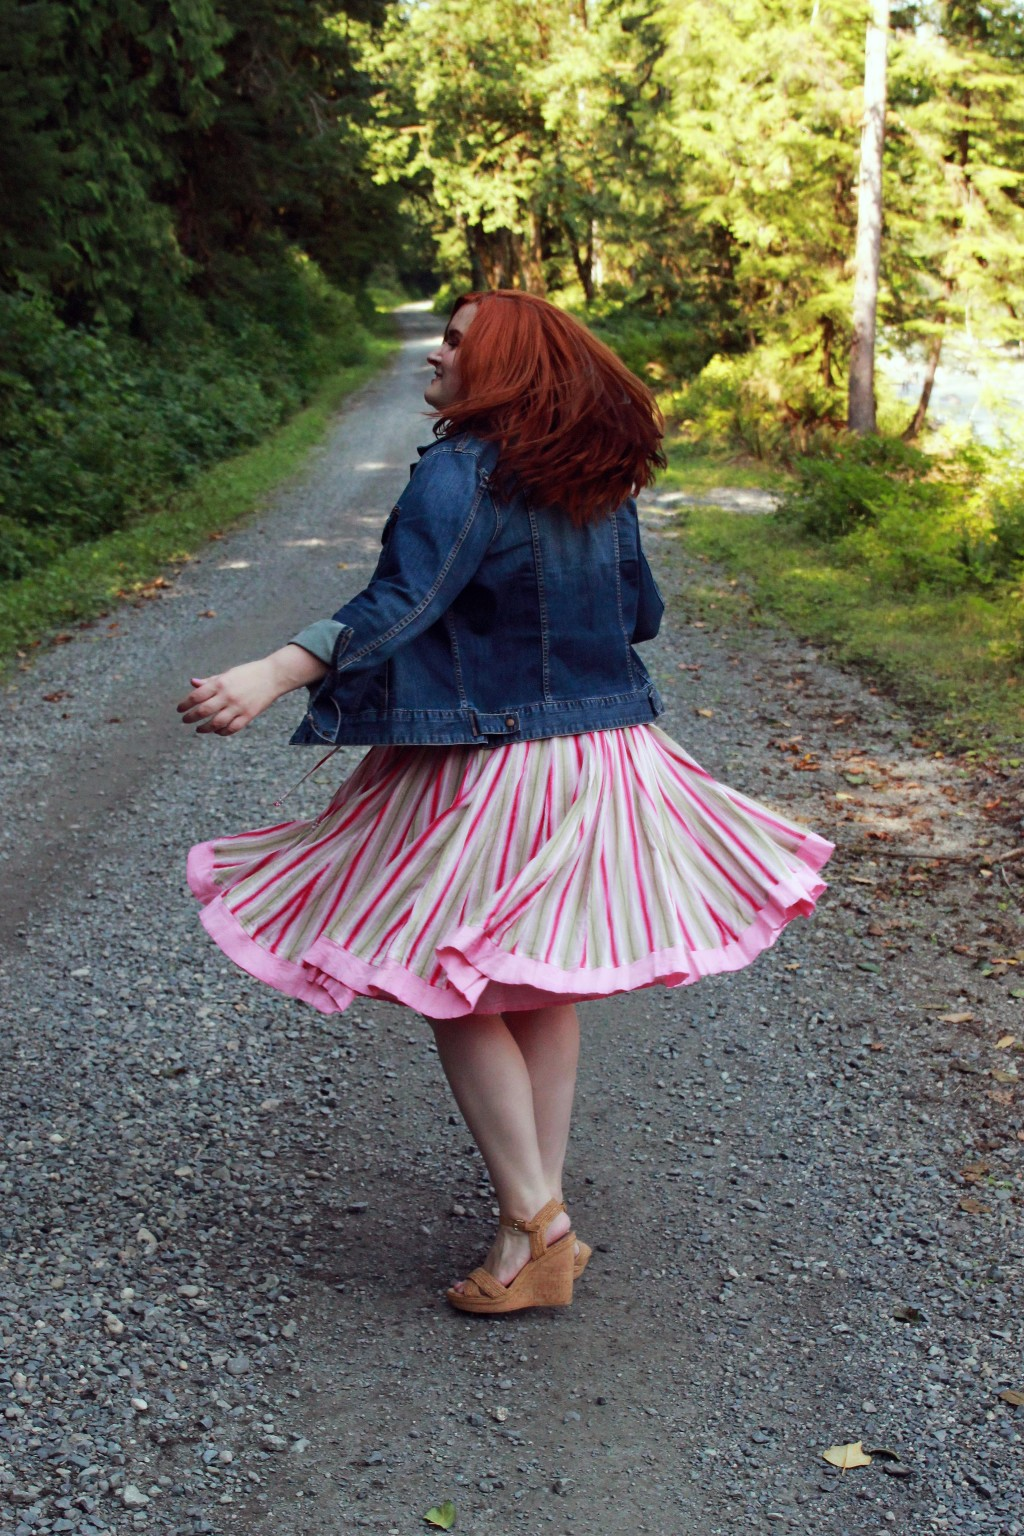 Twirling in a skirt